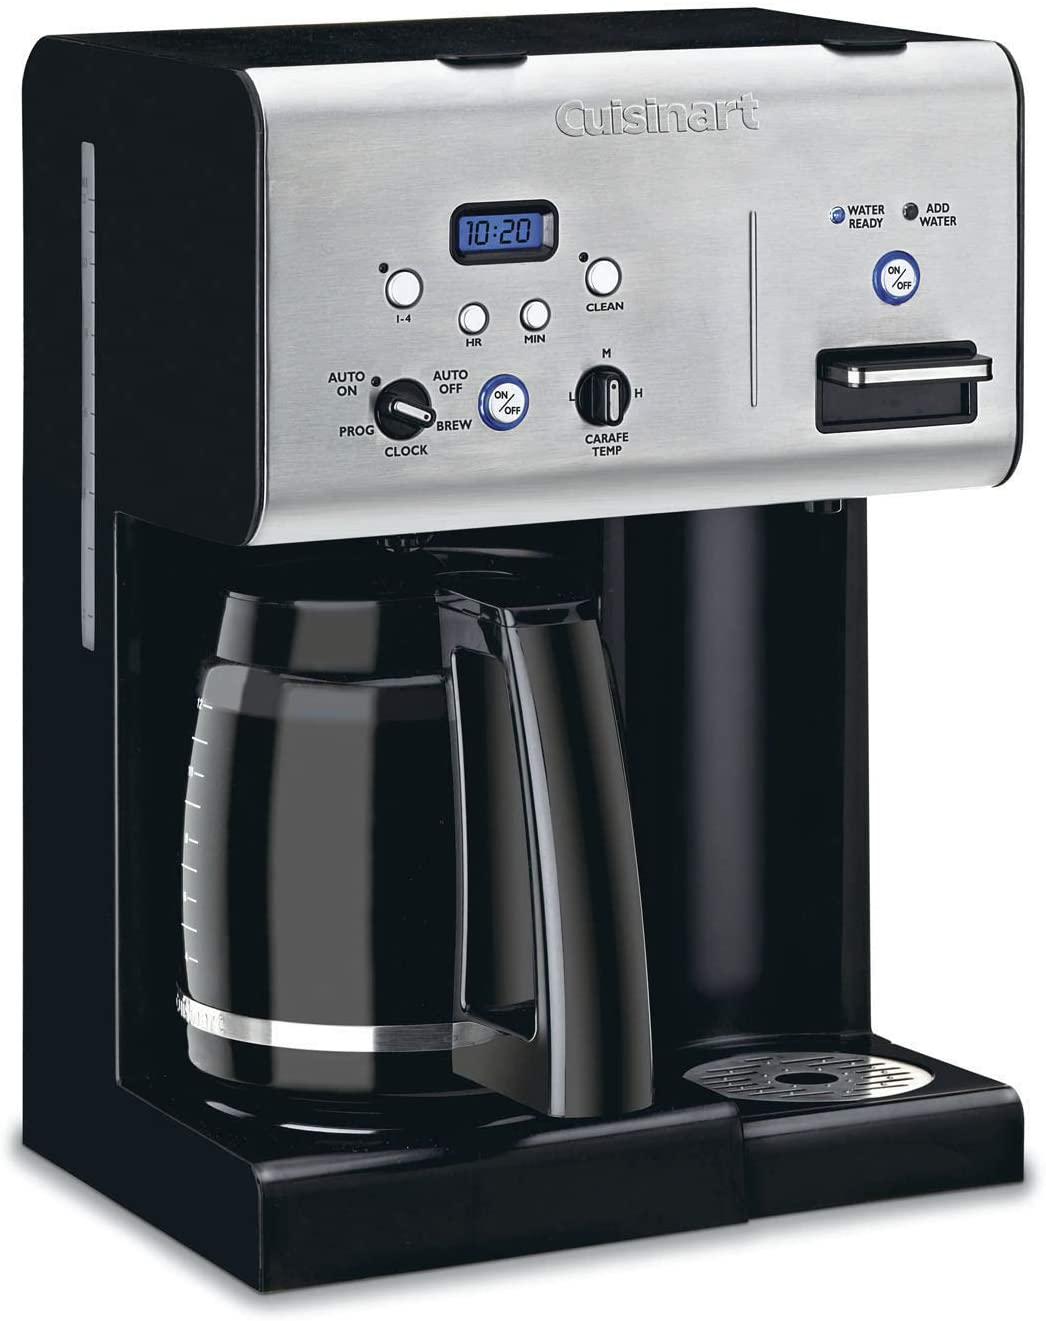 Cuisinart CHW-12P1 12-Cup Programmable Coffeemaker with Hot Water System